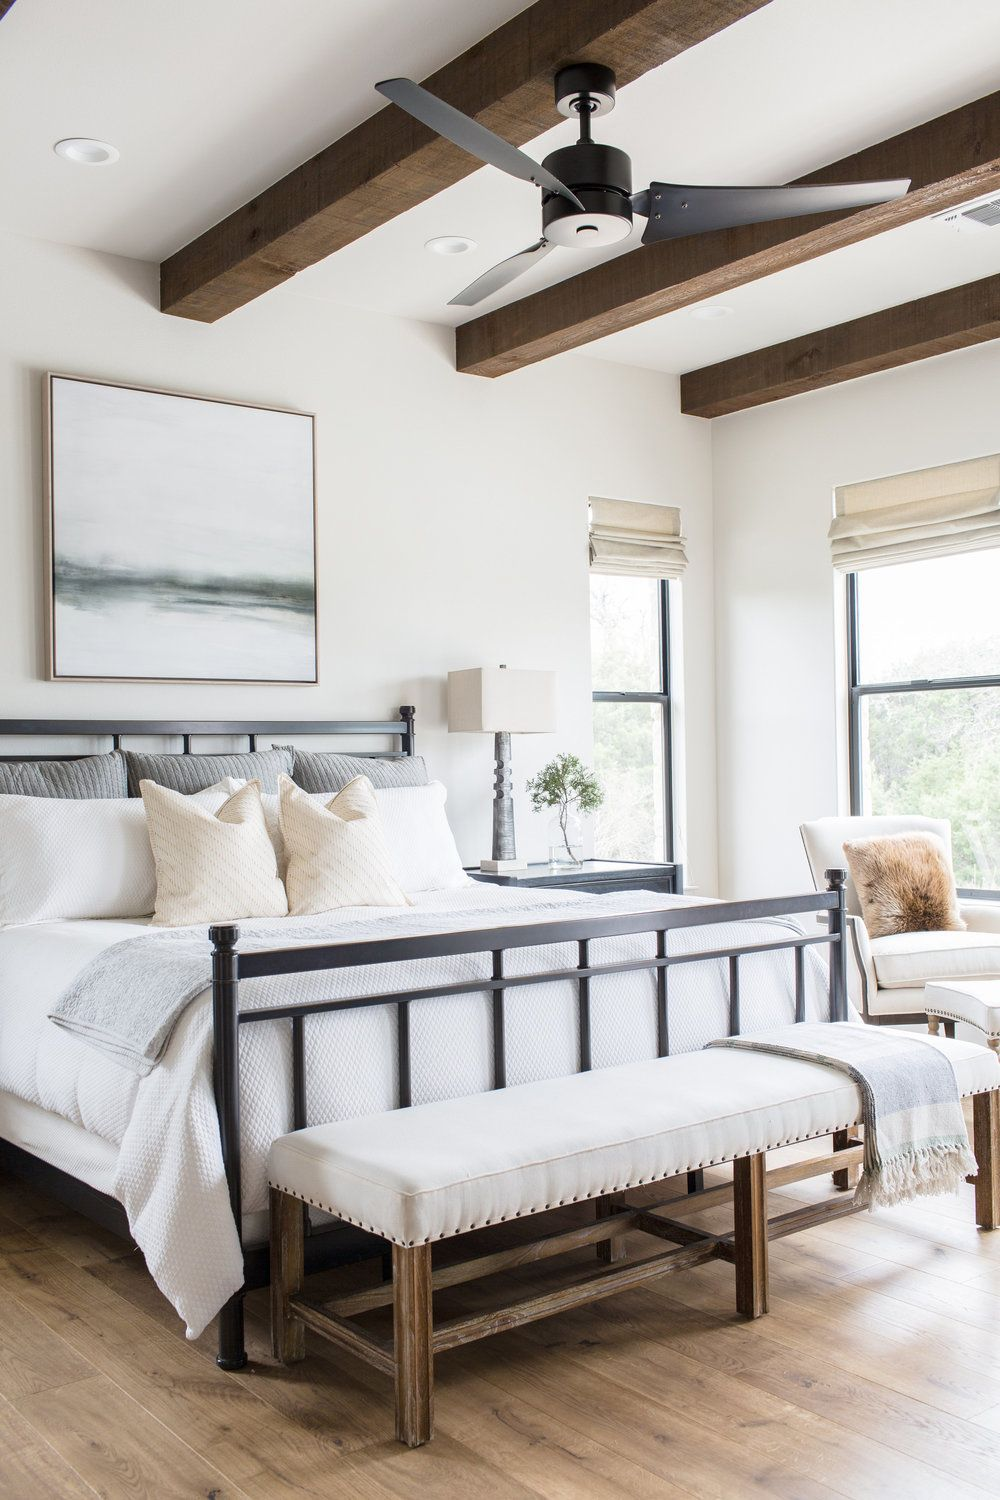 Wood beam detail + exposed beams + bench at end of bed + black metal bed frame + tri-blade fan + black ceiling fan + art above bed + white linens + accent chair | Daley Home Design #modernfarmhousebedroom